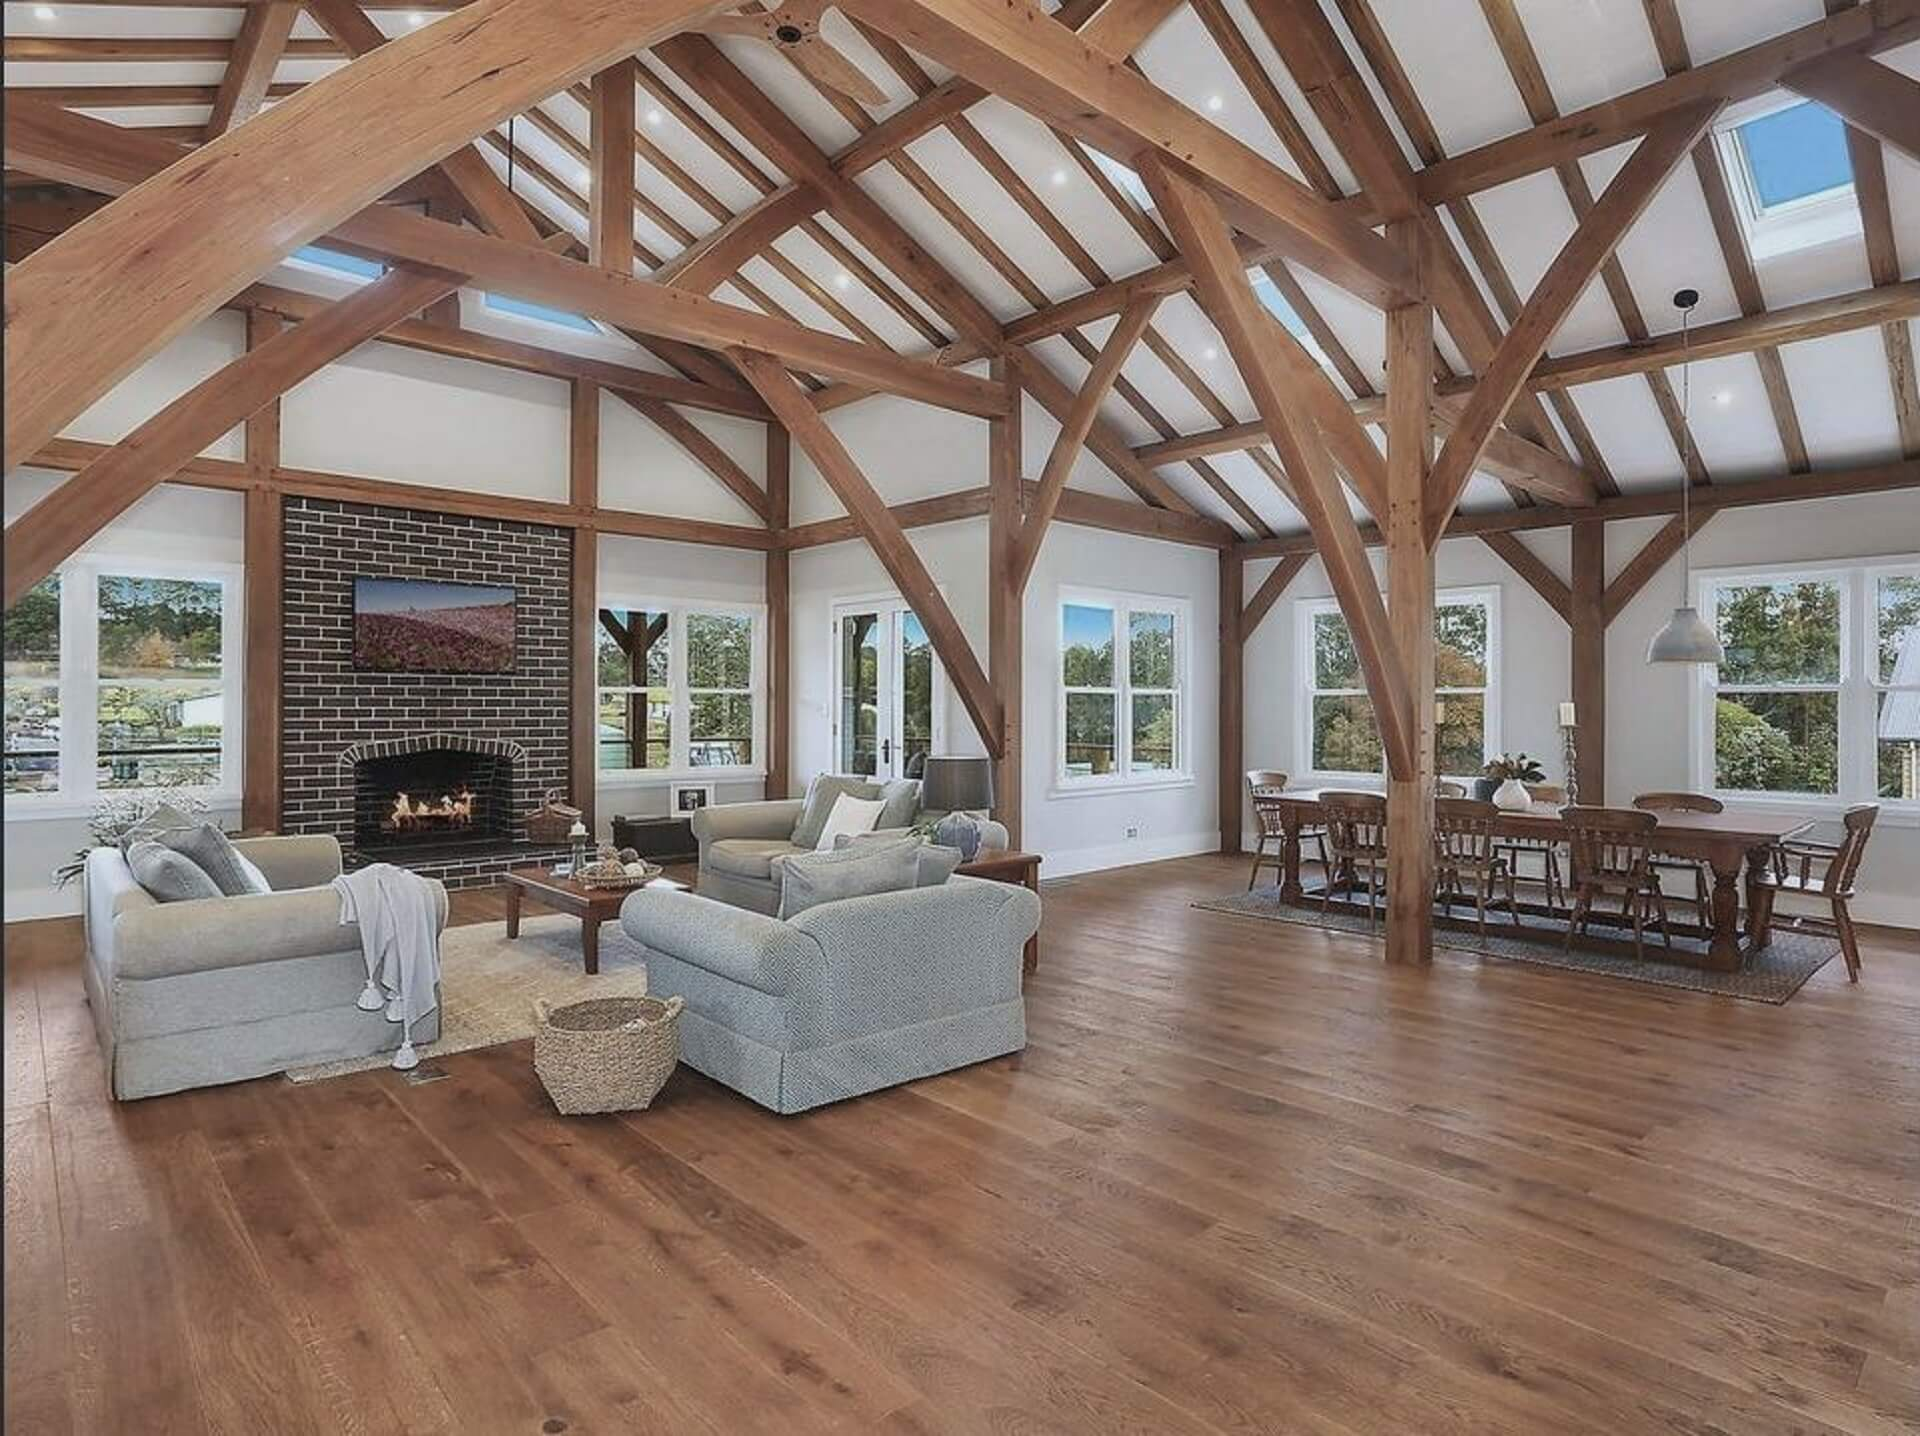 Expansive open plan kitchen, living and dinning. Featuring an exposed traditional timber frame with custom curved braces and federation style brick fireplace